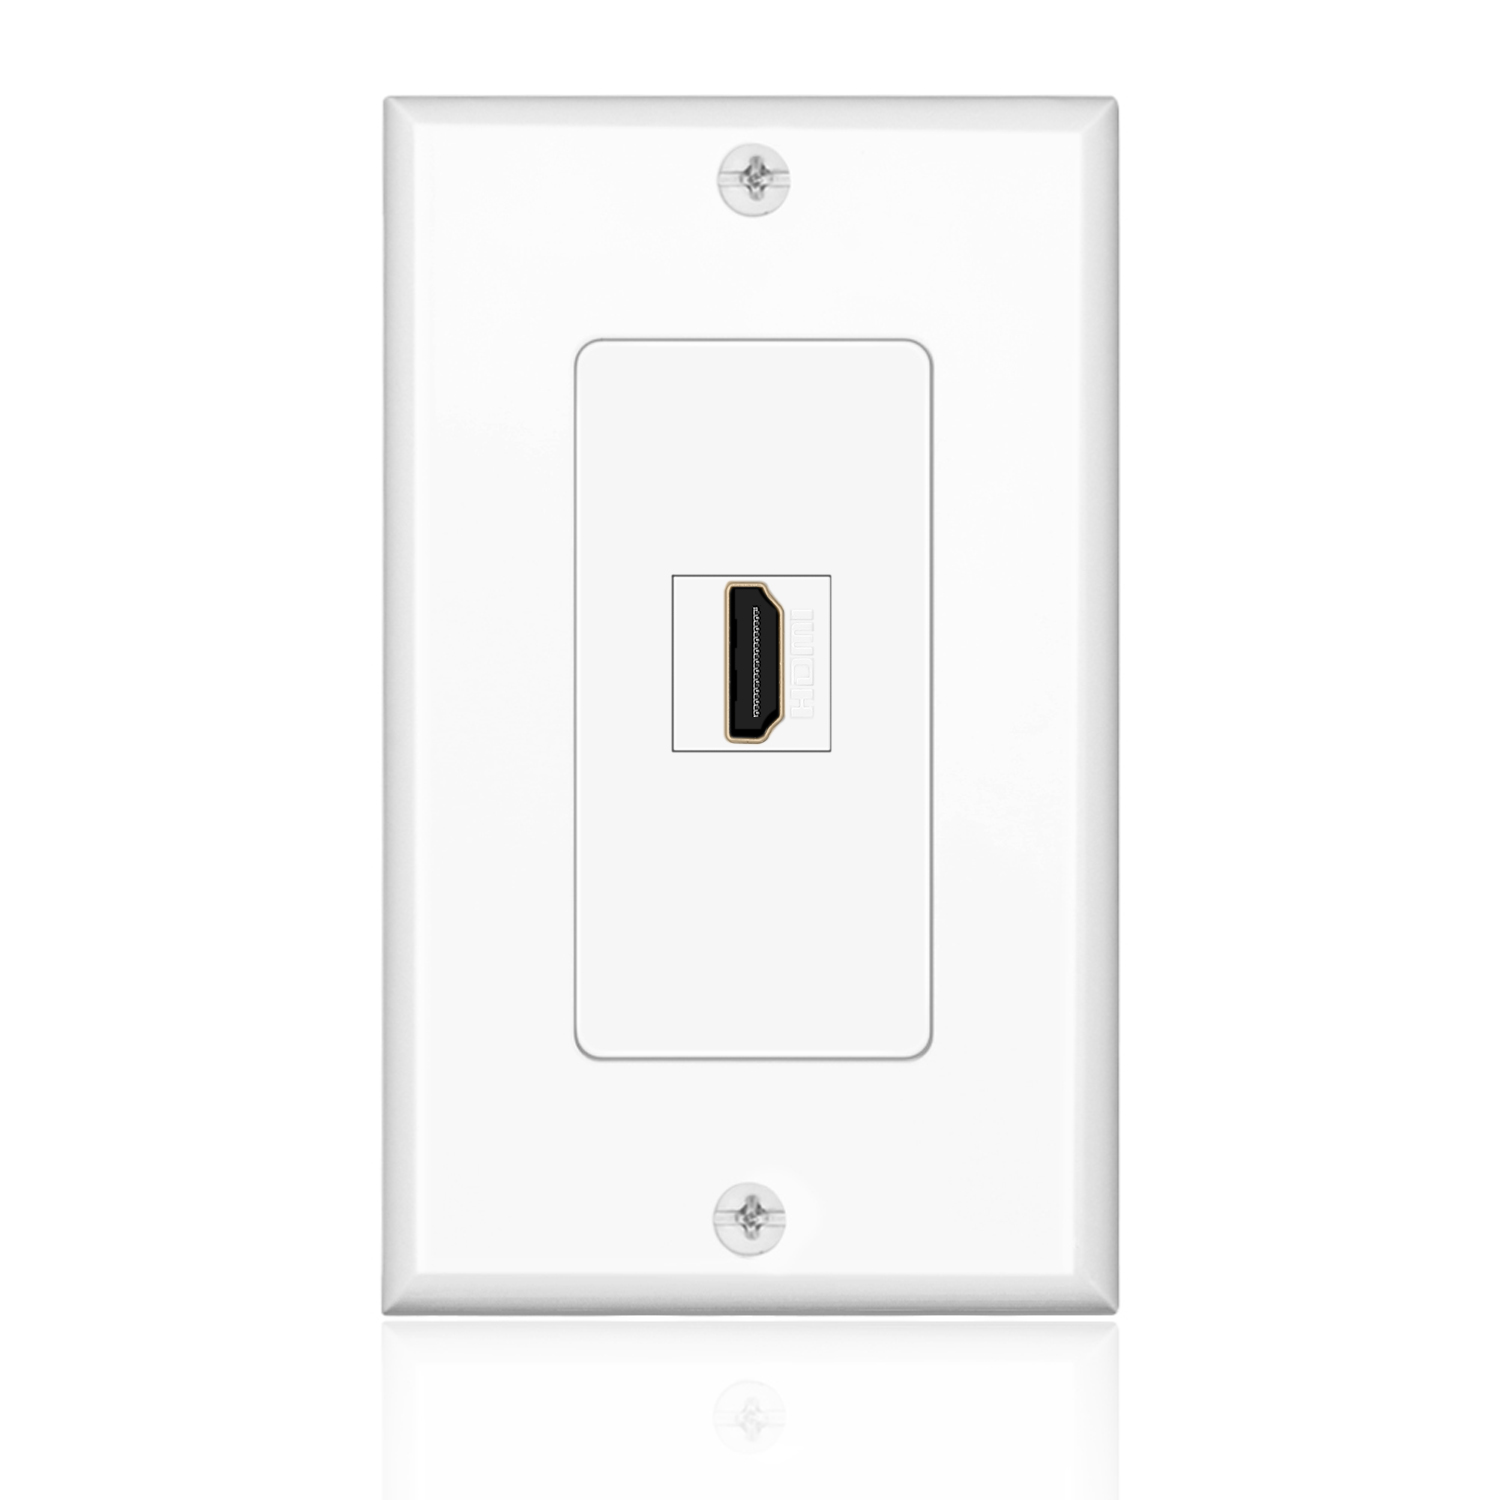 HDMI Wall Plate (1 Port, White) HDMI Socket Plug Insert